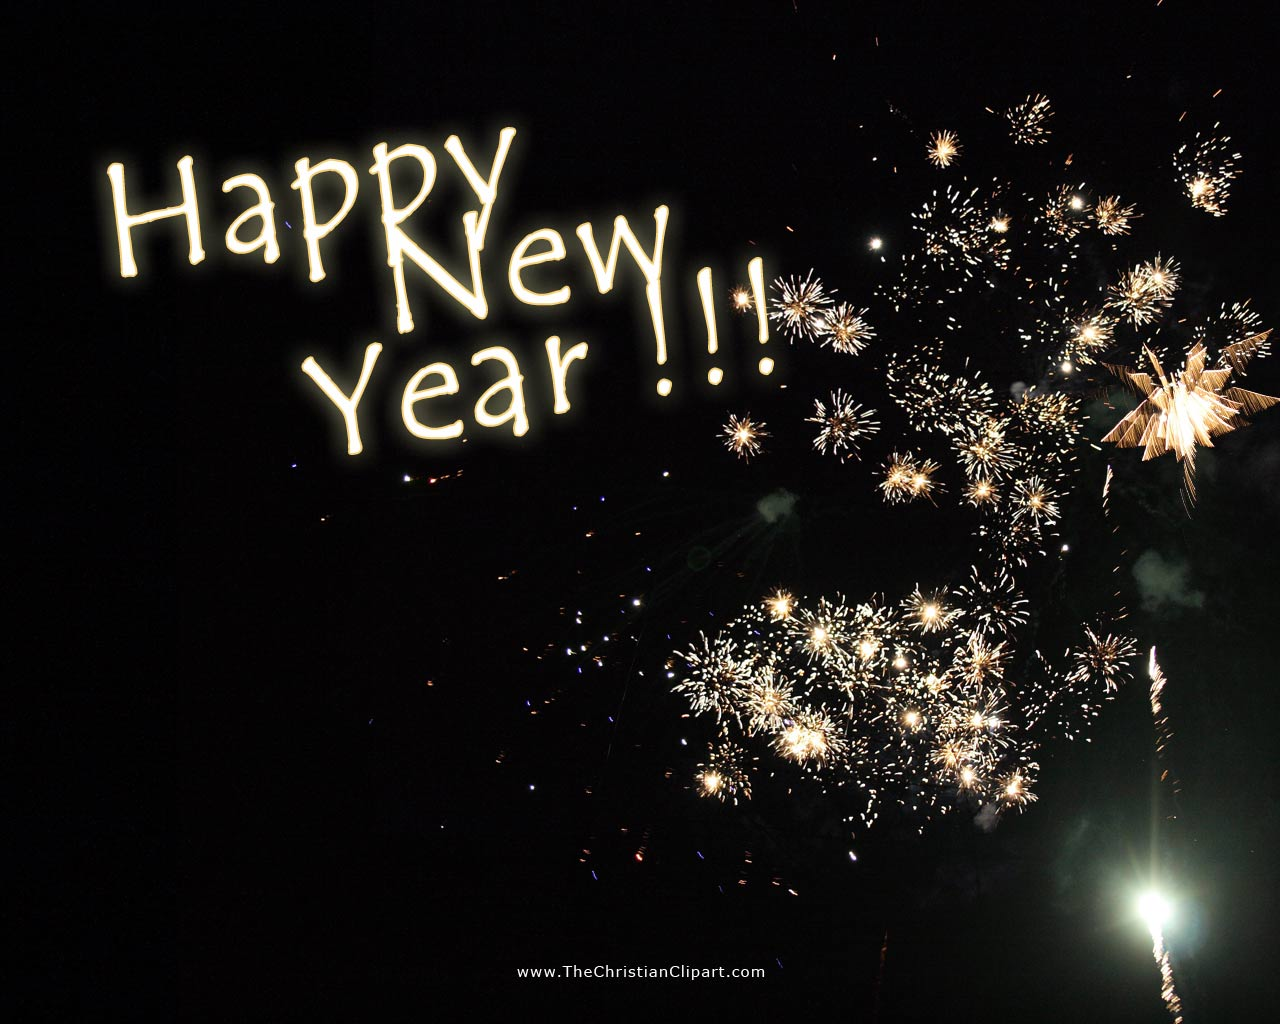 newyearwallpaper freepspthemeswallpapersblogspotcom happy new year 1280x1024